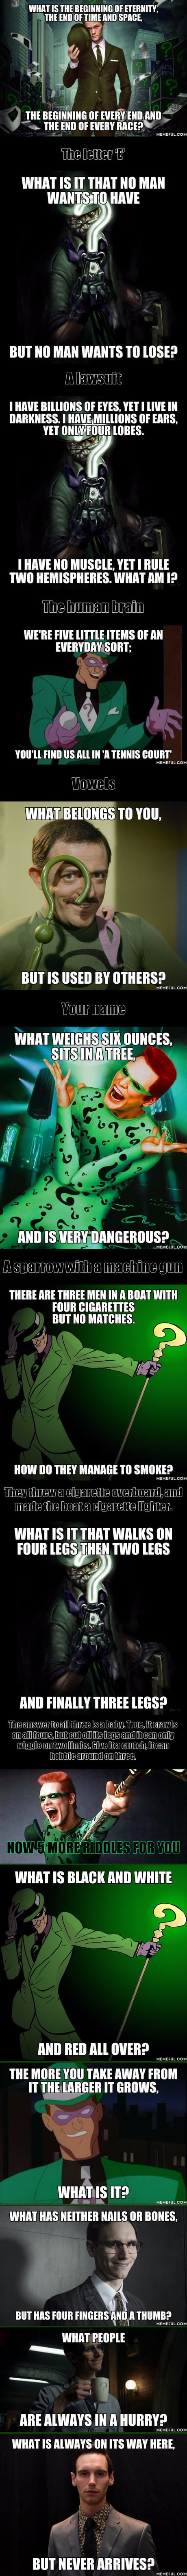 13 Riddles From The Riddler Can You Solve Them 9gag